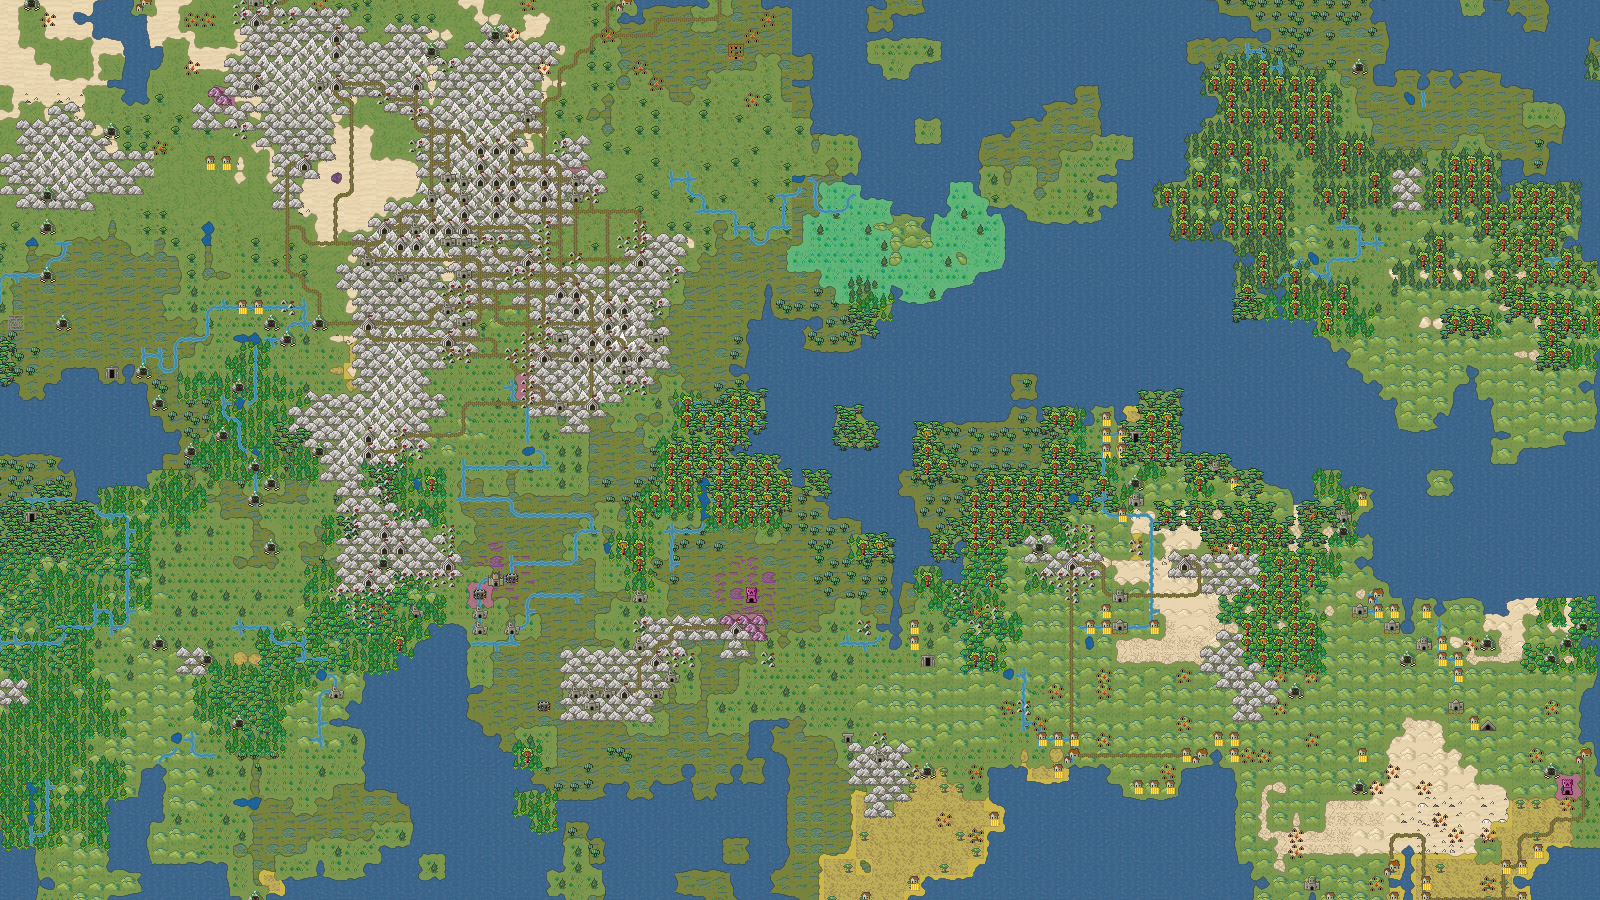 Dwarf Fortress looks like a whole new game with a graphical world map screenshot